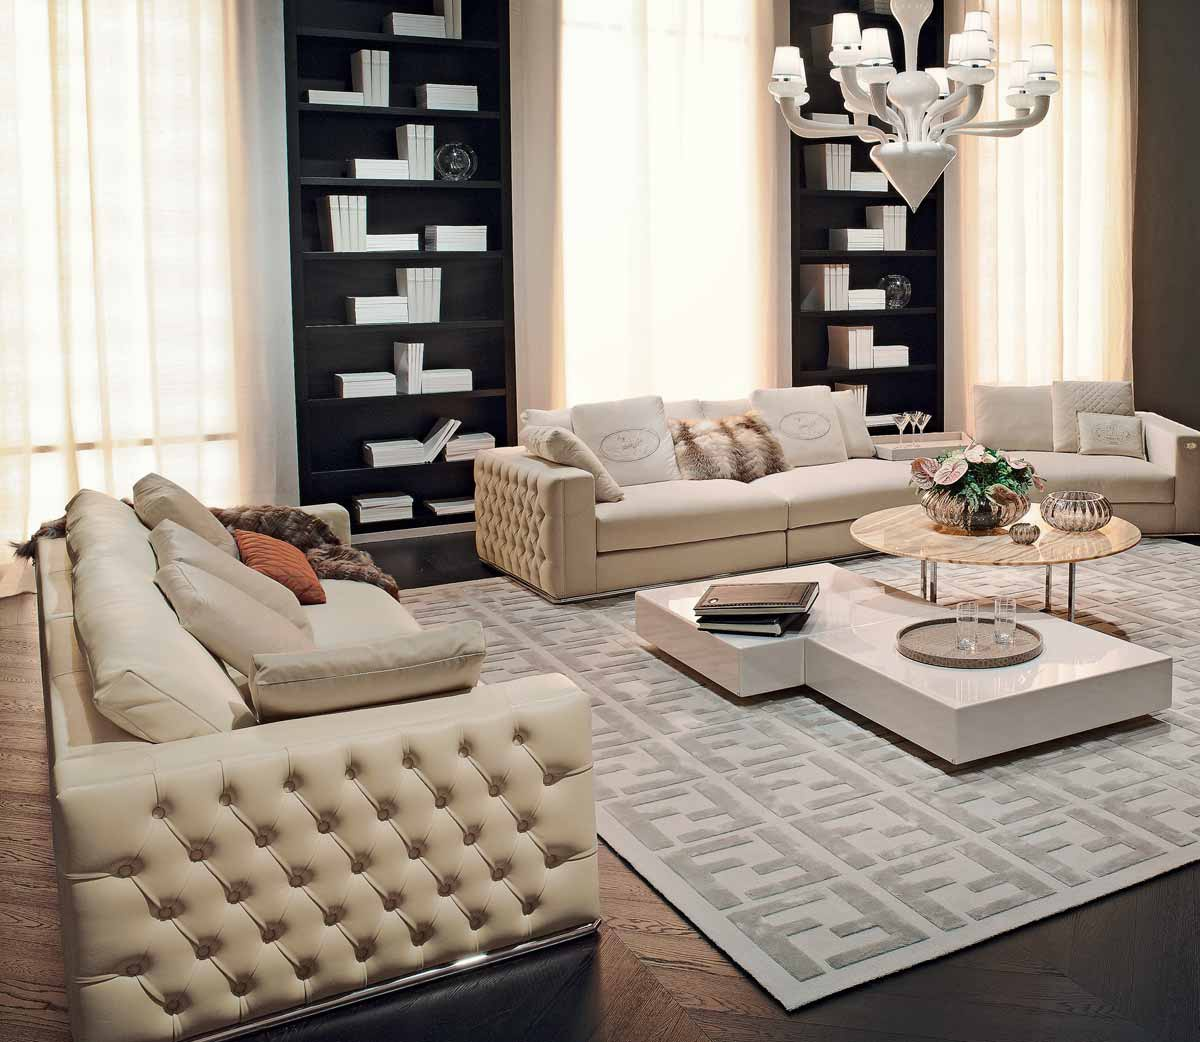 Sofa In Leather Or Textile Upholstery Plaza, Fendi